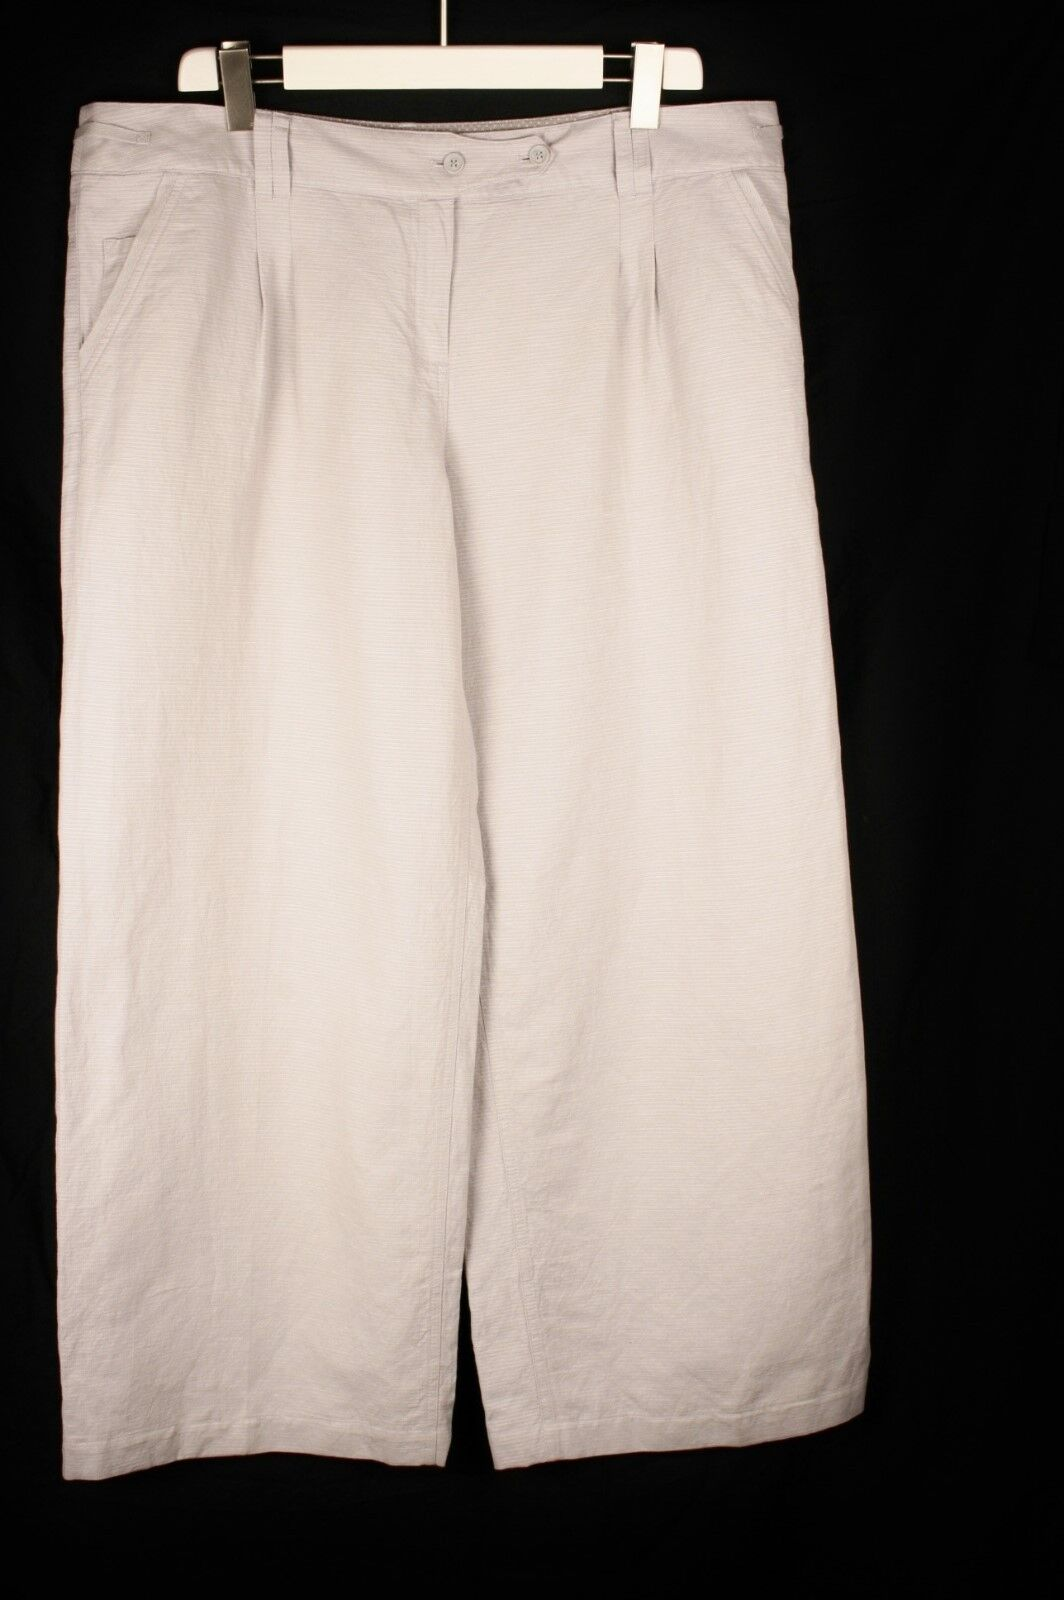 Poetry BNWT Cotton Linen Ribbed Trousers sz 22 S